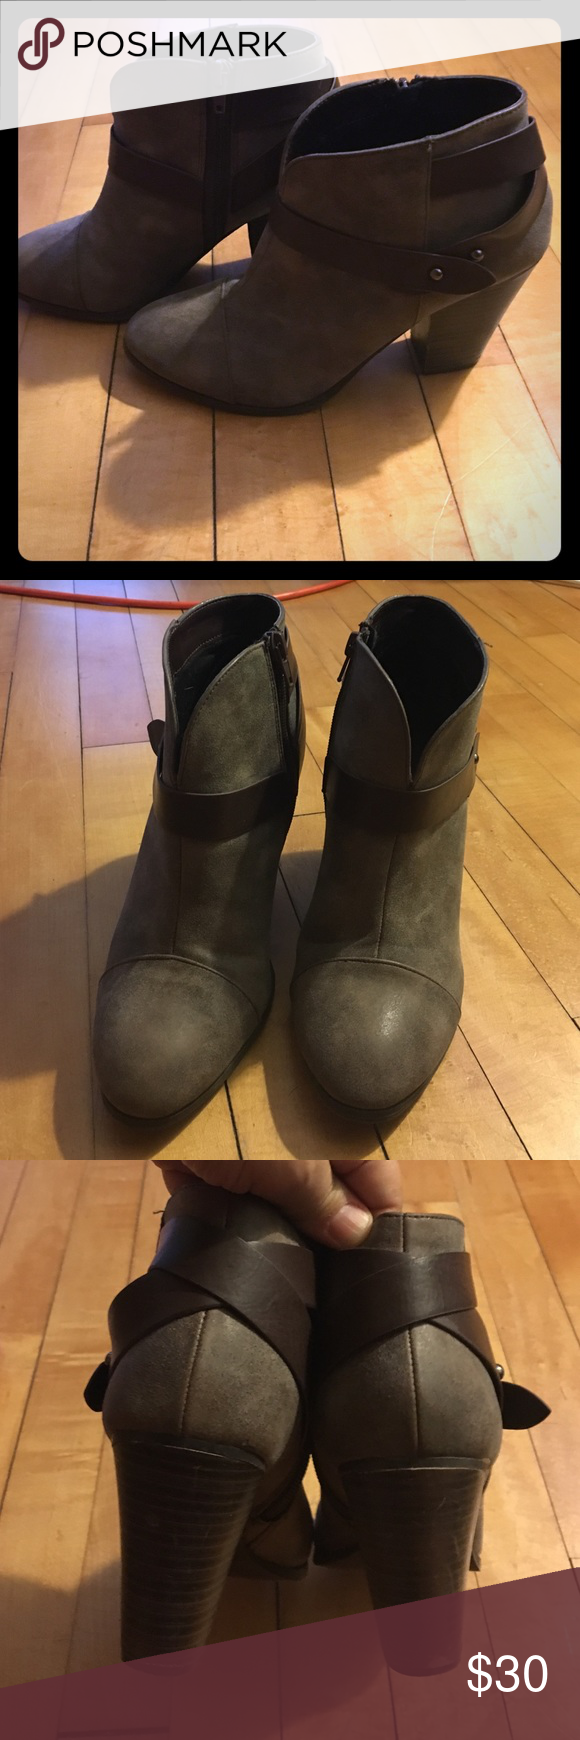 Grey booties, brown details and chunky heal, S7 Grey shoedazzle booties with brown strap details and chunky heal, size 7, worn a handful of times last winter so really good condition! Shoe Dazzle Shoes Ankle Boots & Booties